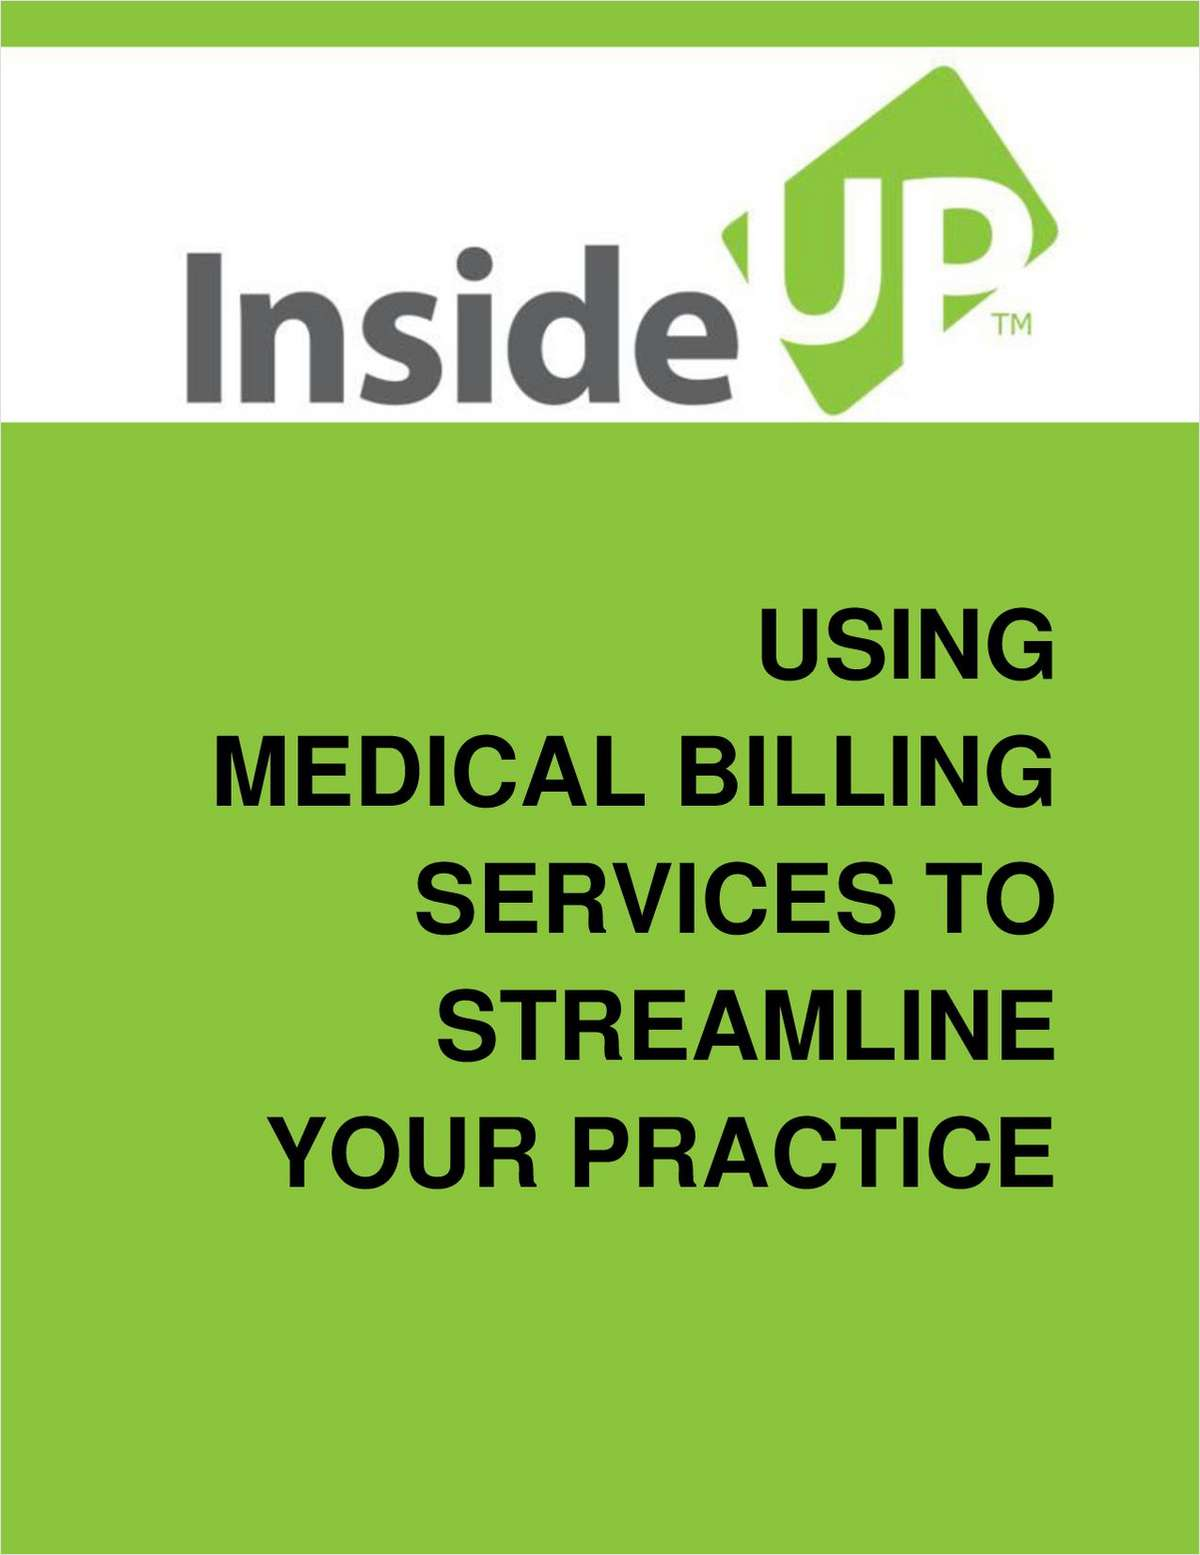 Using Medical Billing Services To Streamline Your Practice